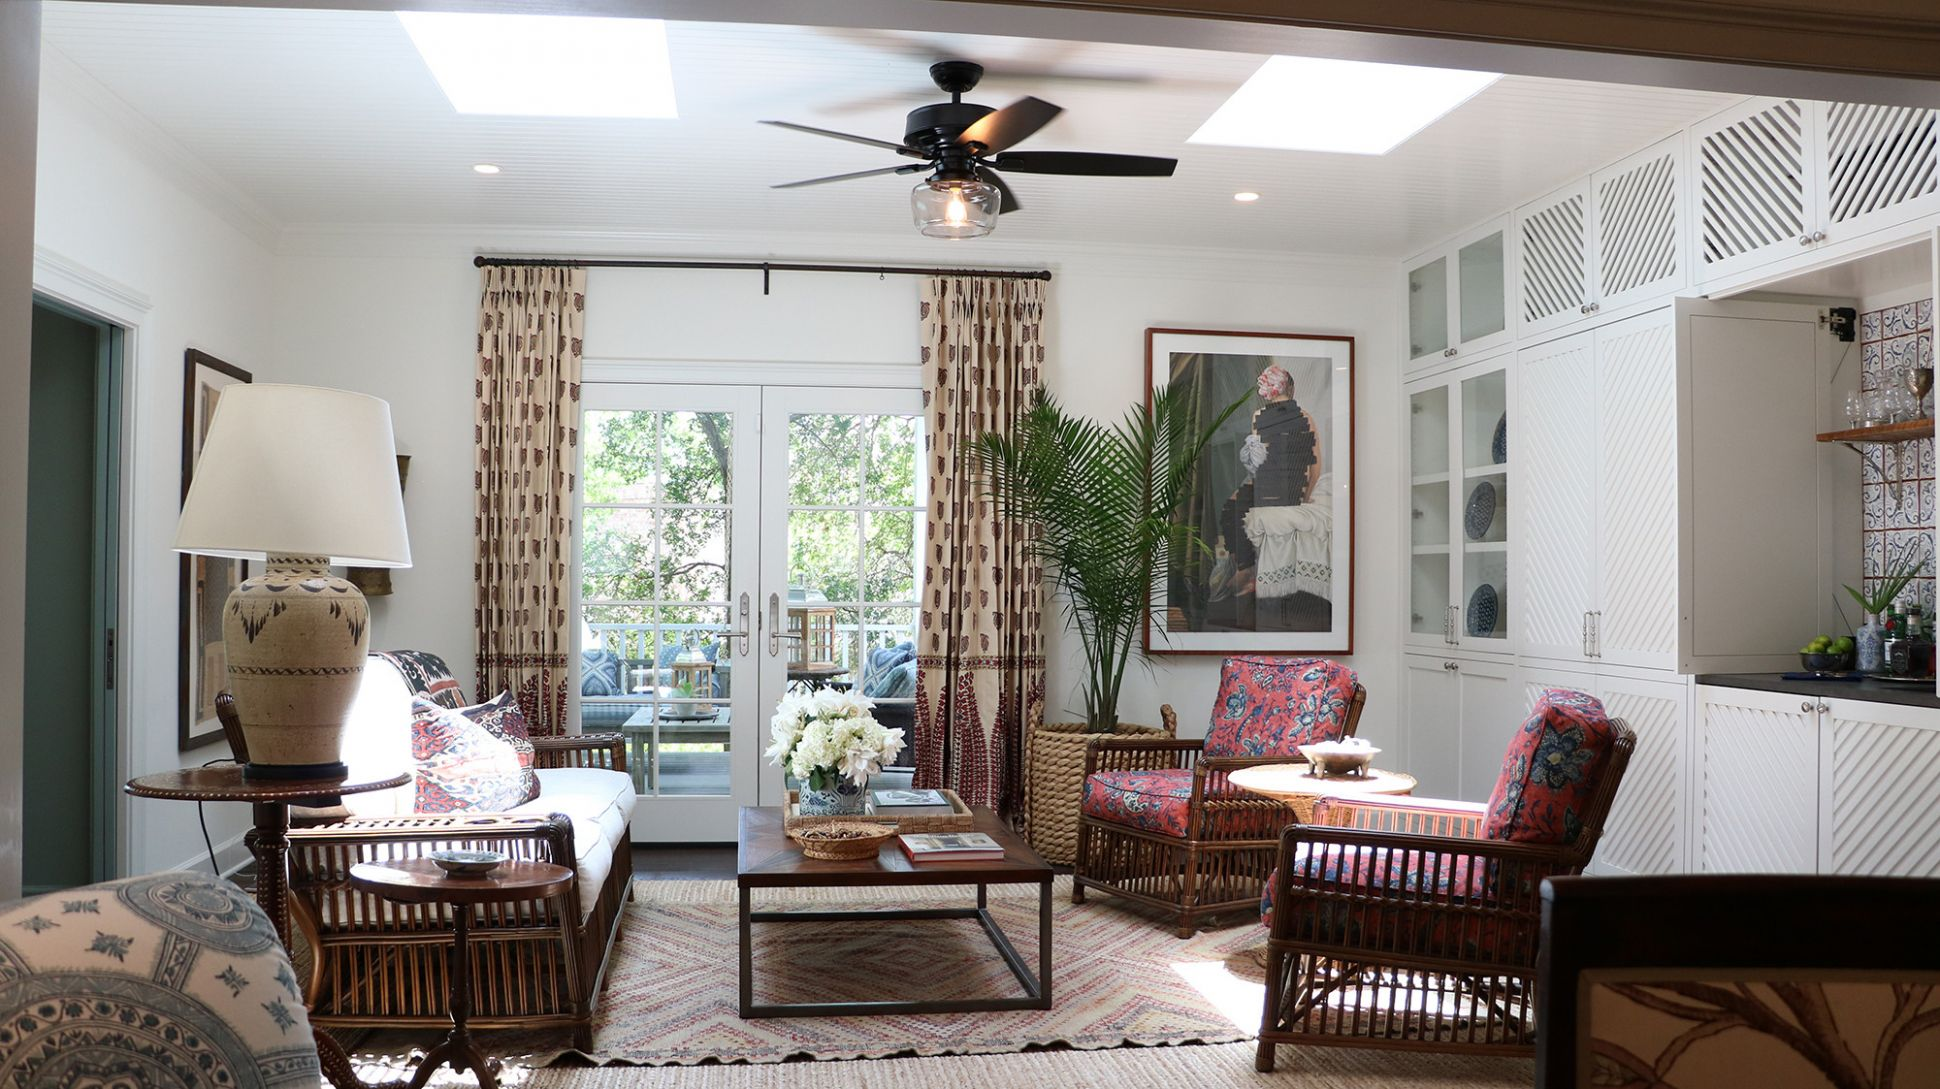 Brighten your space with sunroom ceiling fan ideas | Hunter fan blog